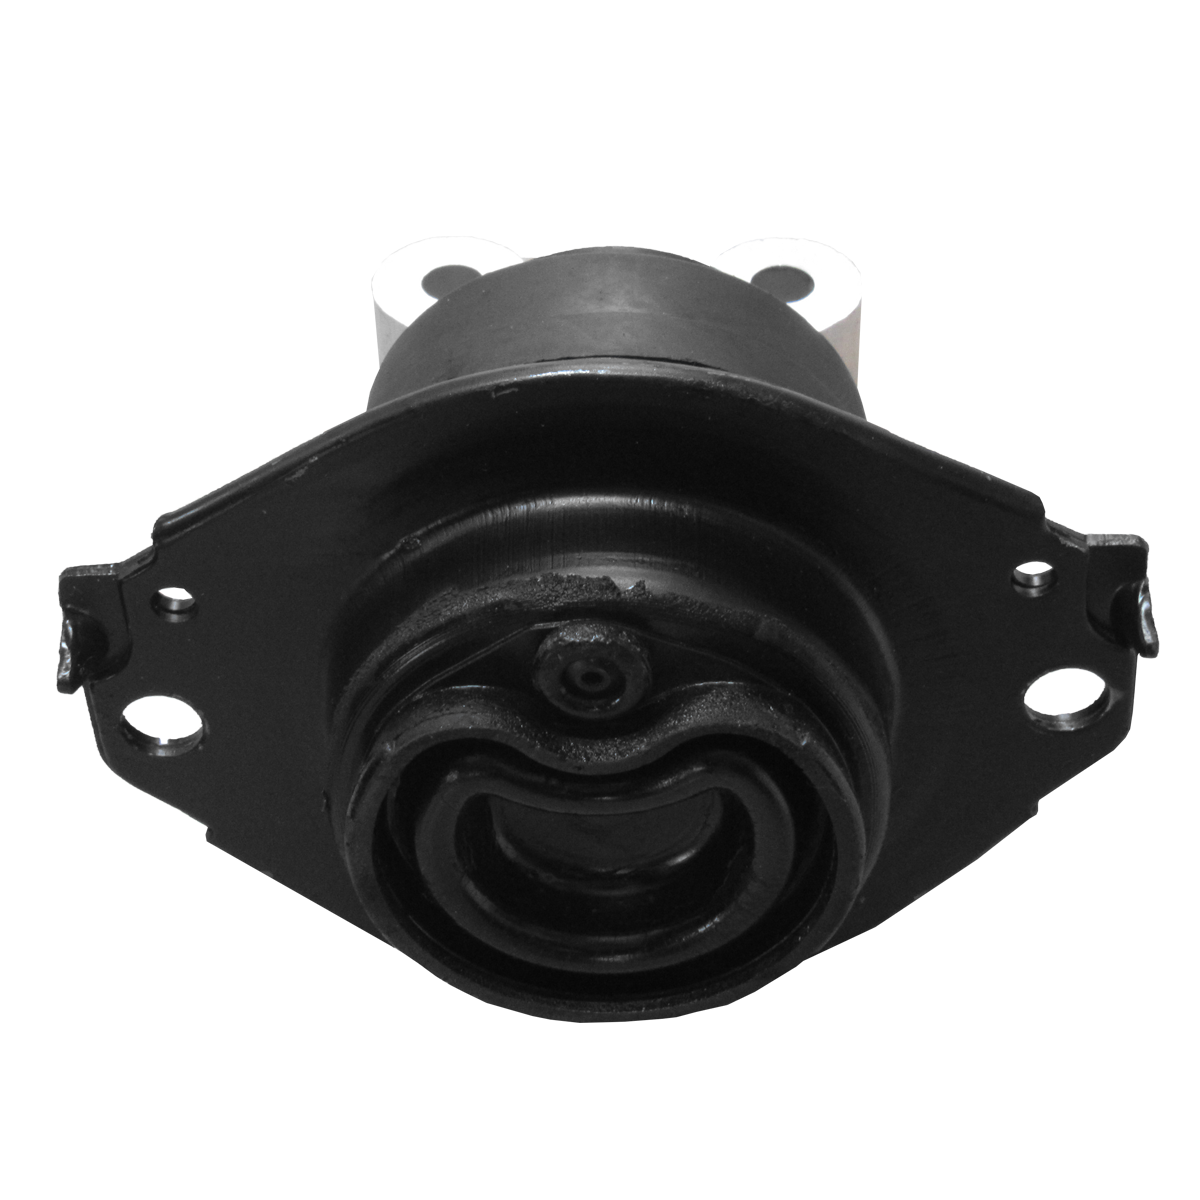 Coxim do Motor Jeep Gr Cherokee 3.6 2011/15 Parts - Peca -